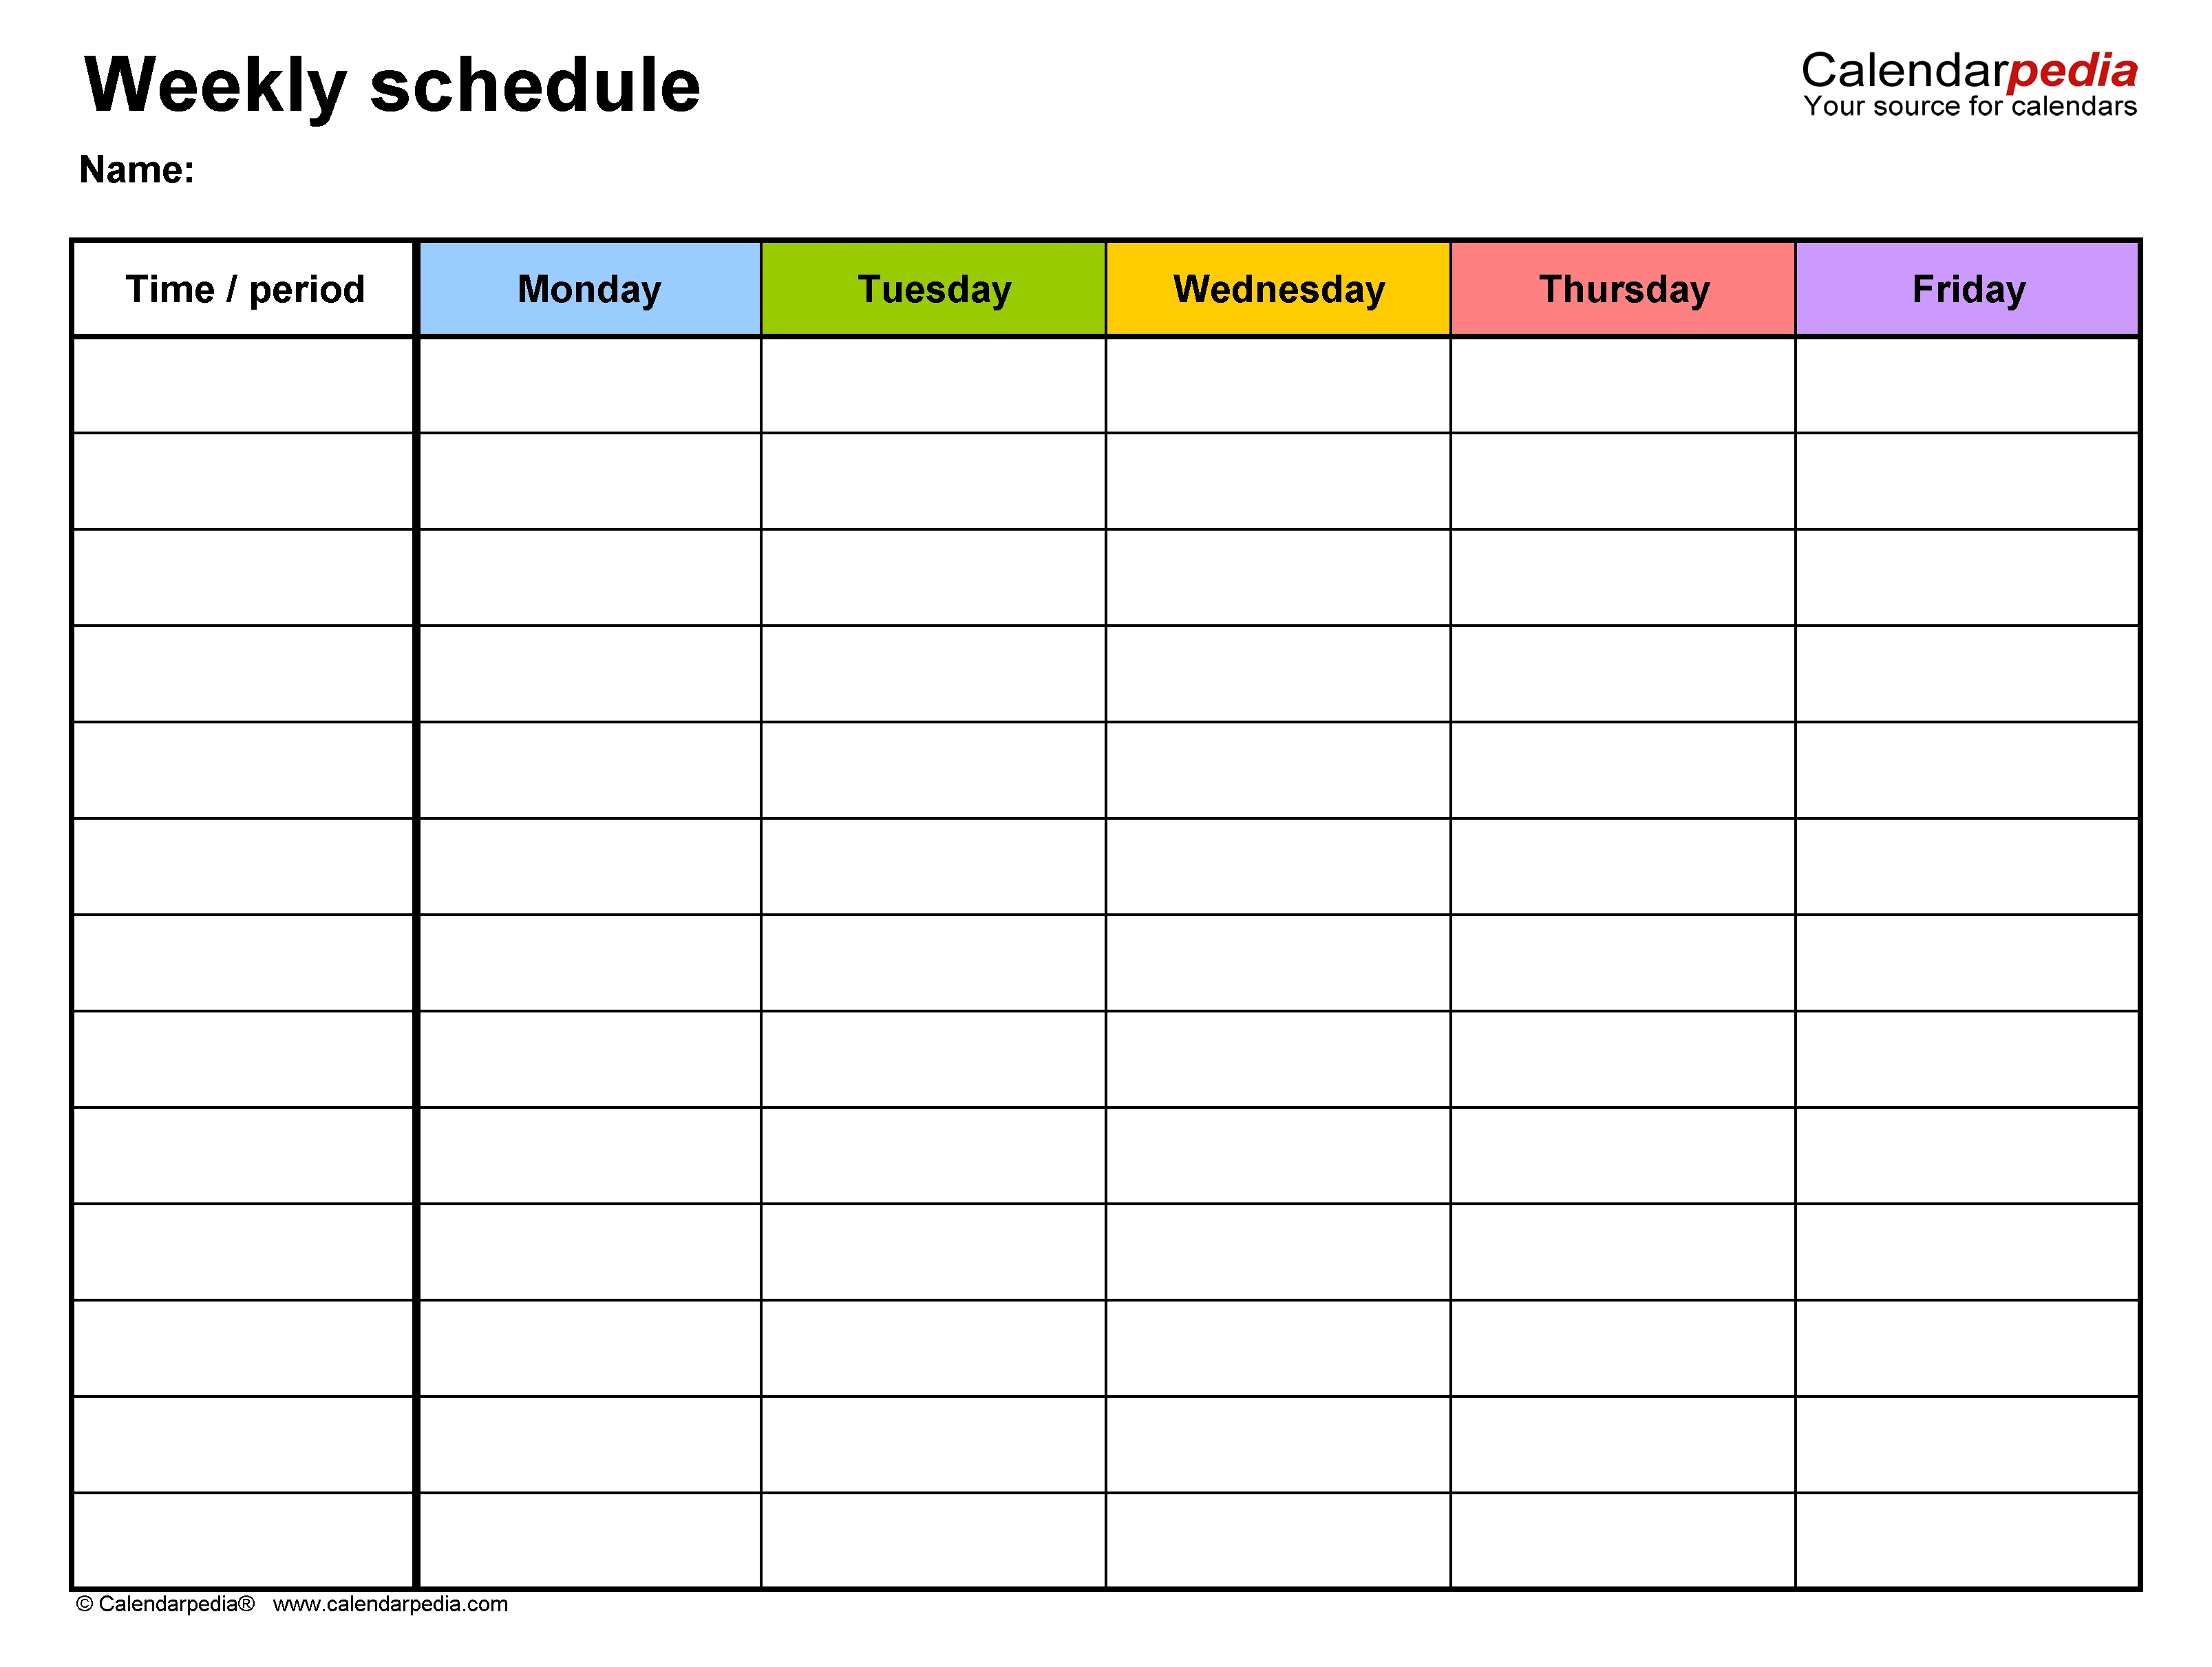 Free Weekly Schedule Templates For Pdf - 18 Templates-Monday To Sunday Calendar Template Writing Practice